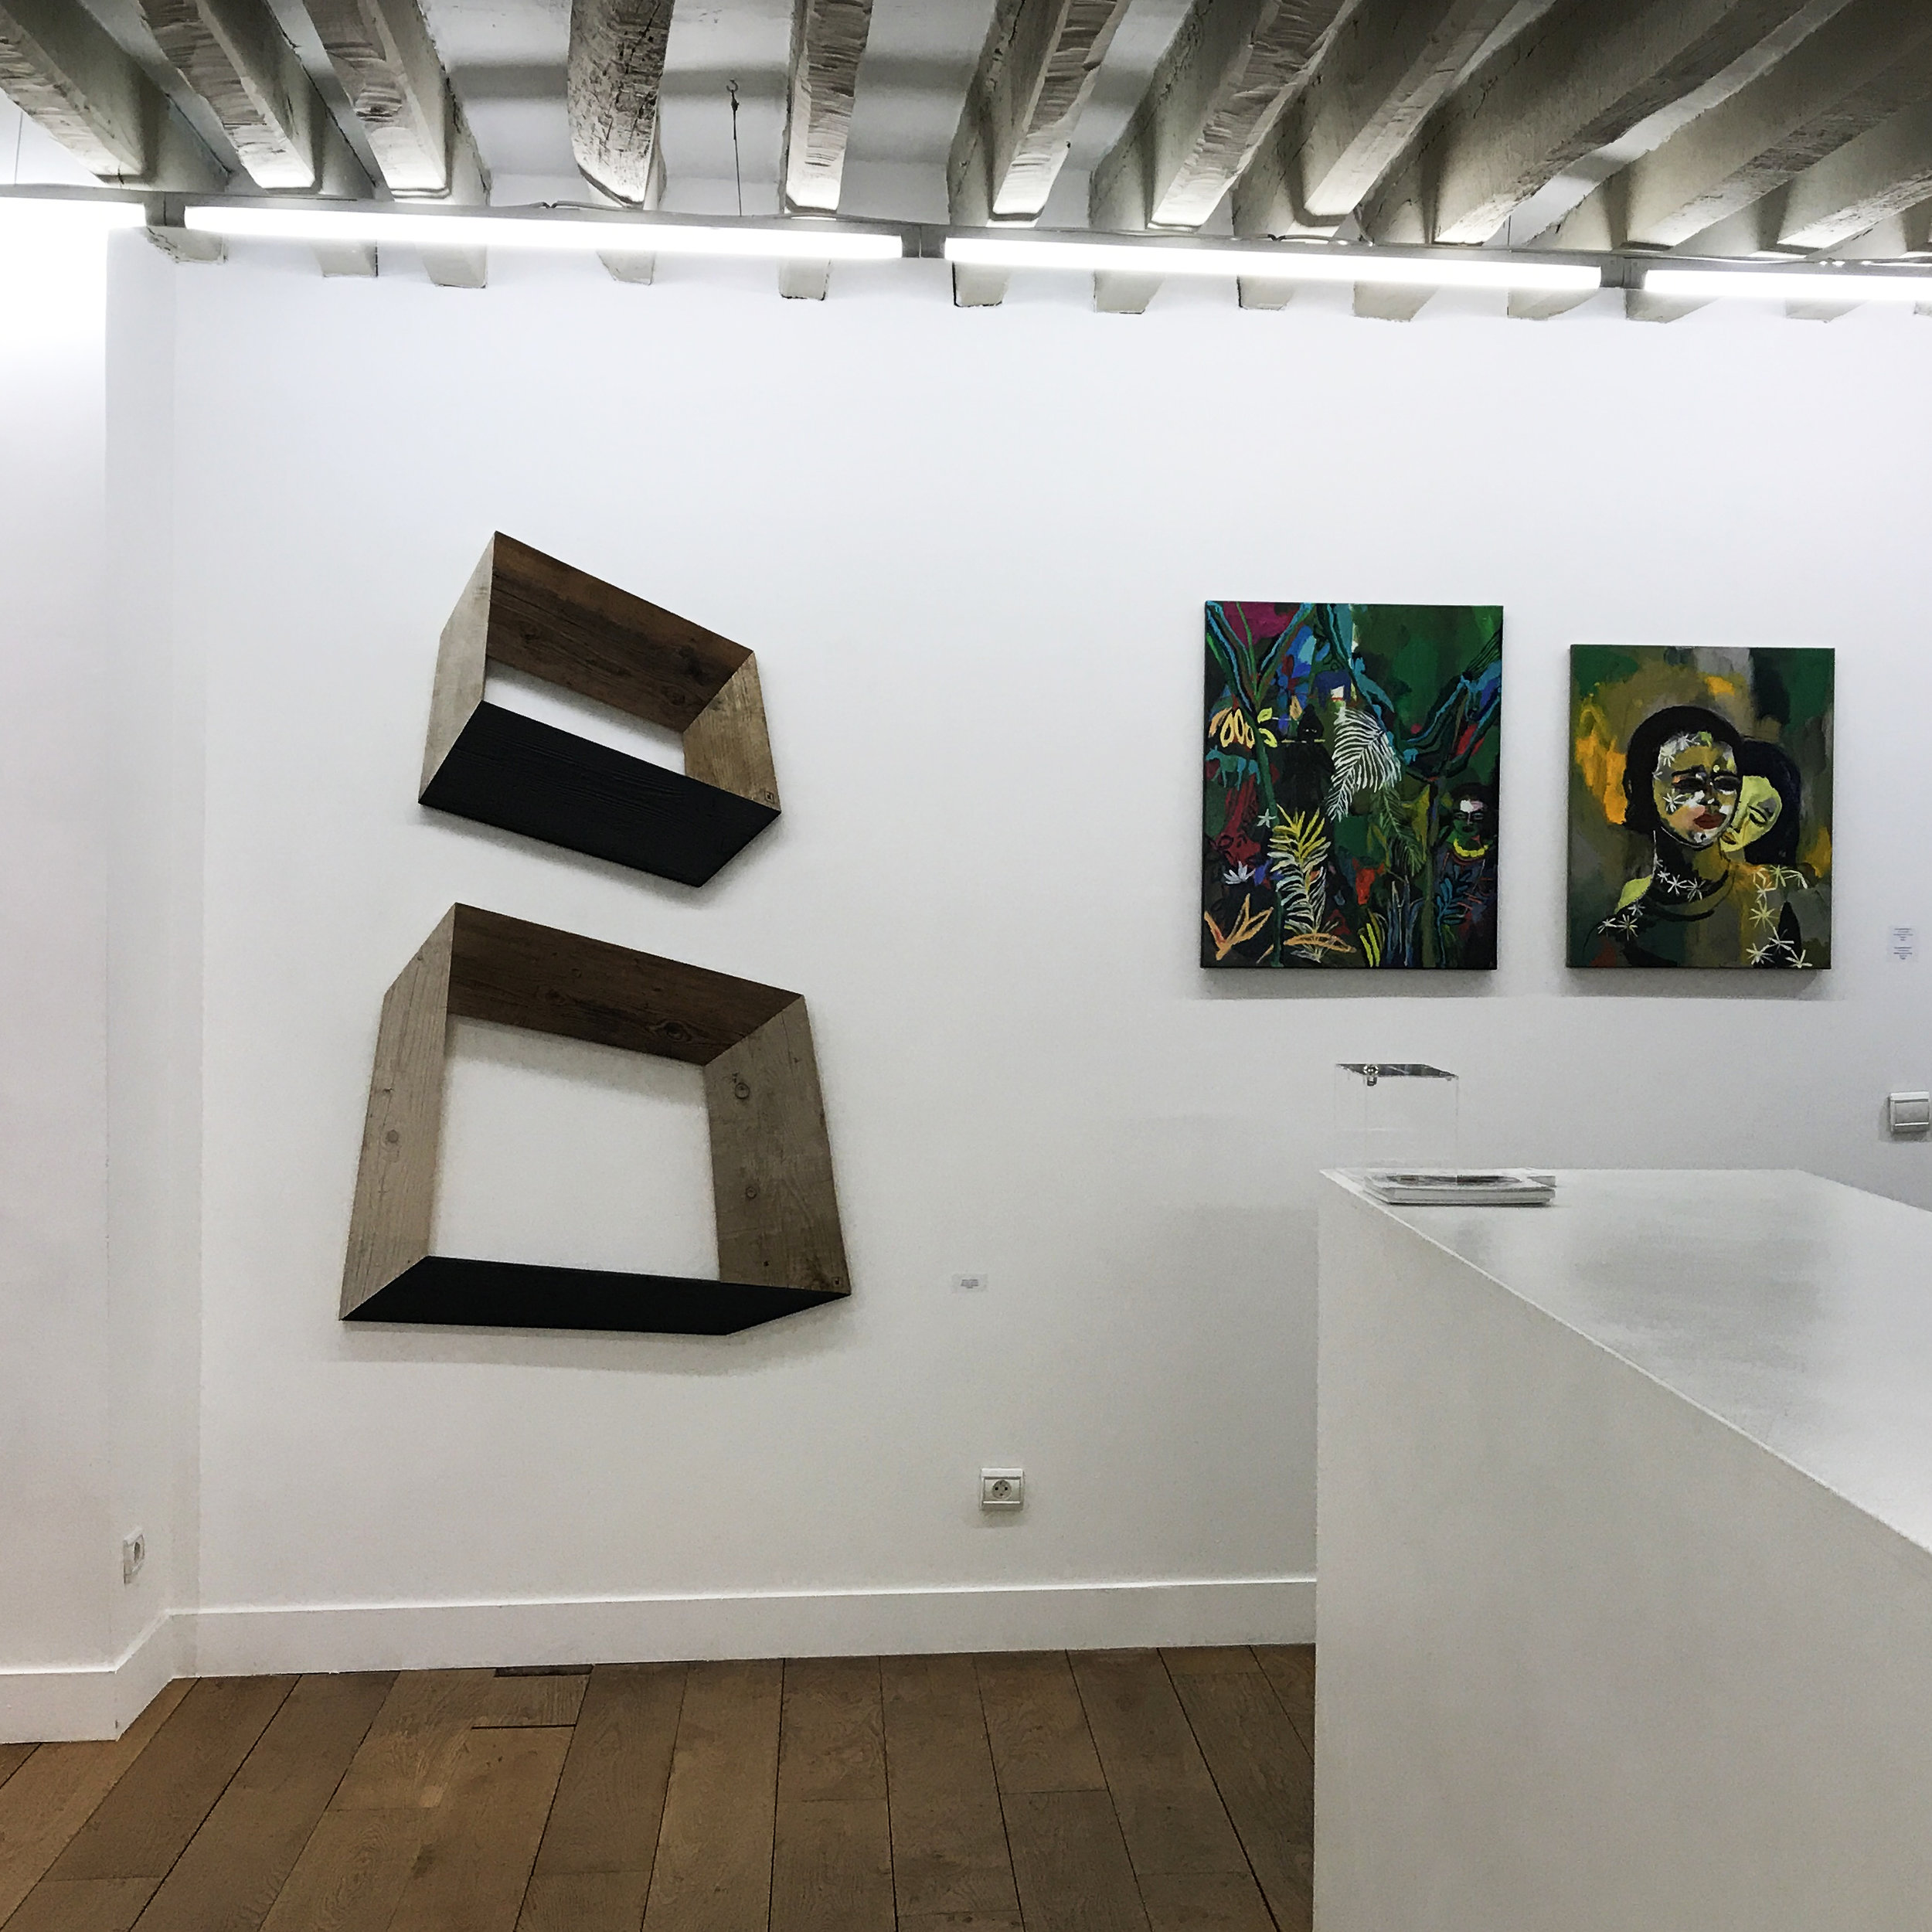 Exposition_All_are_Guests_2018_Antonius_Driessens_et_Alice_Grenier_Nebout.JPG